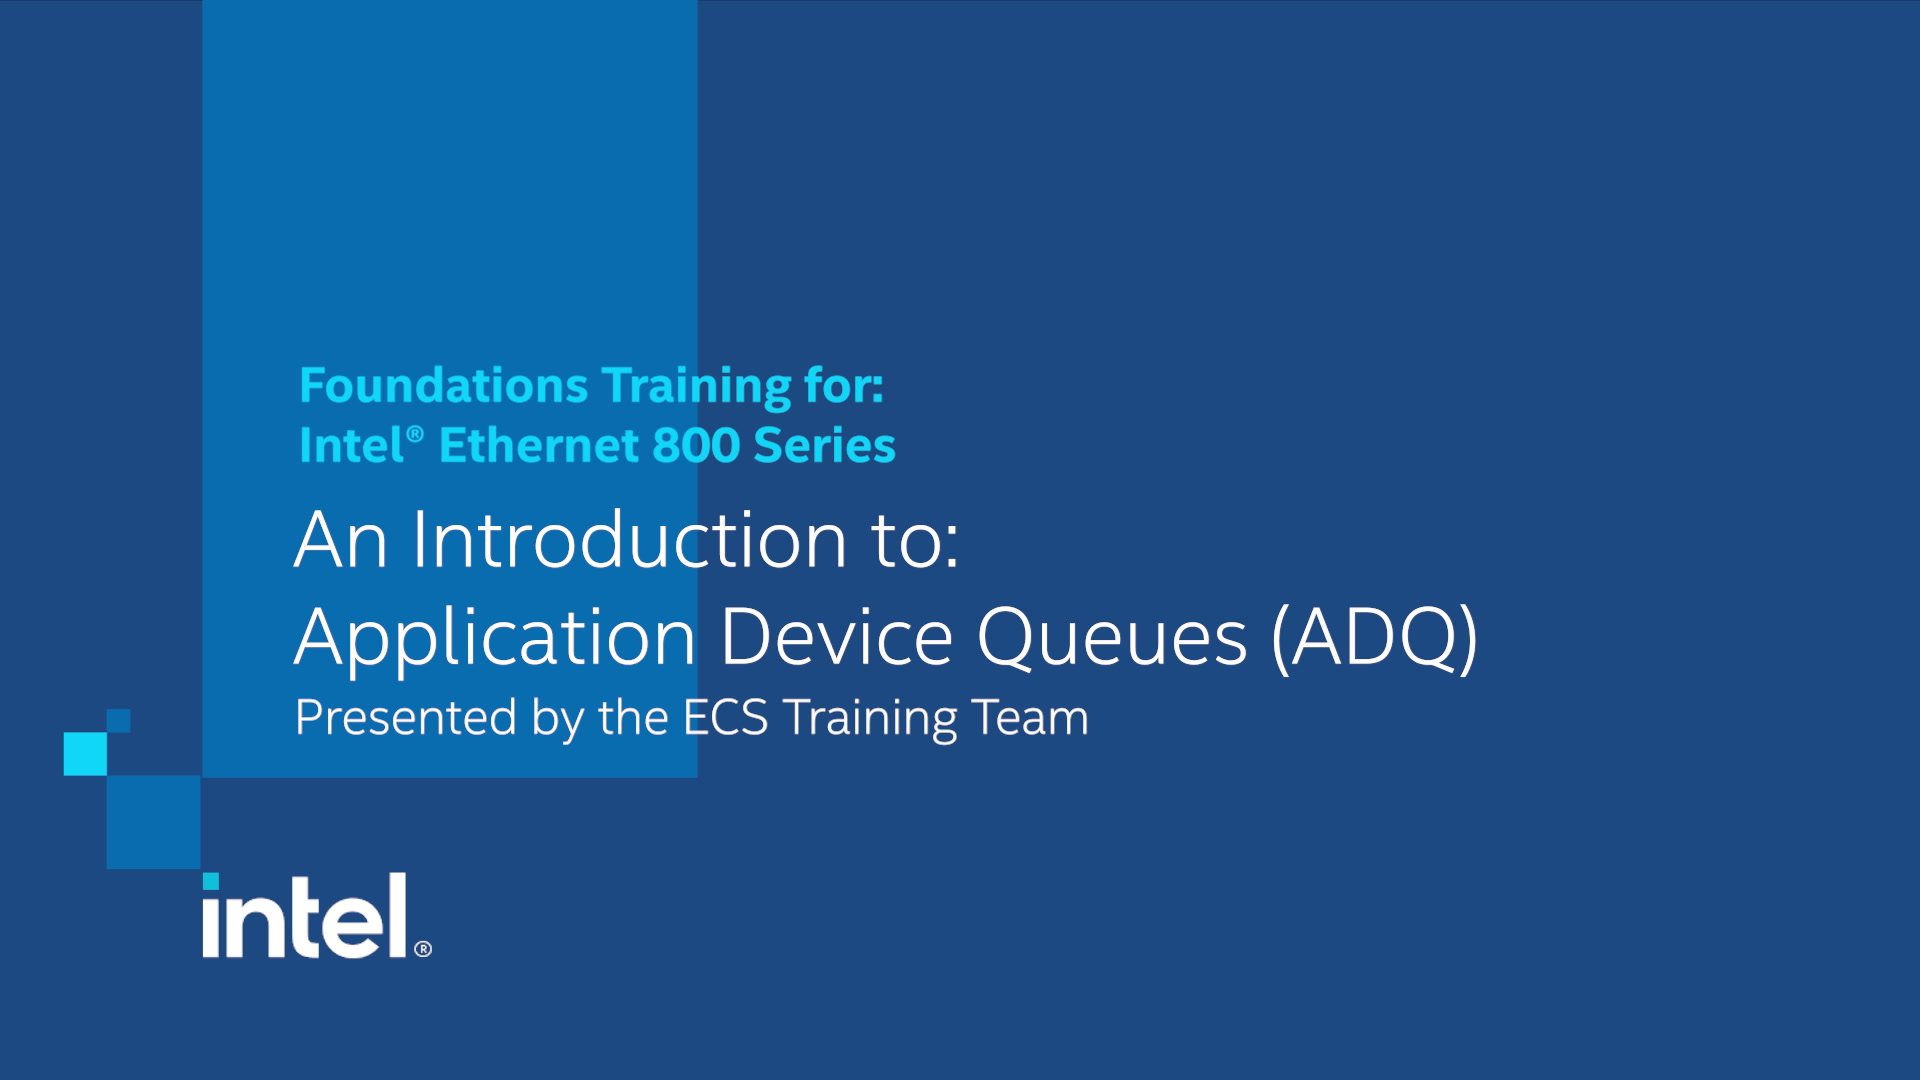 Chapter 1: Intel® Ethernet 800 Series Training: Introduction to Application Device Queues (ADQ) Video